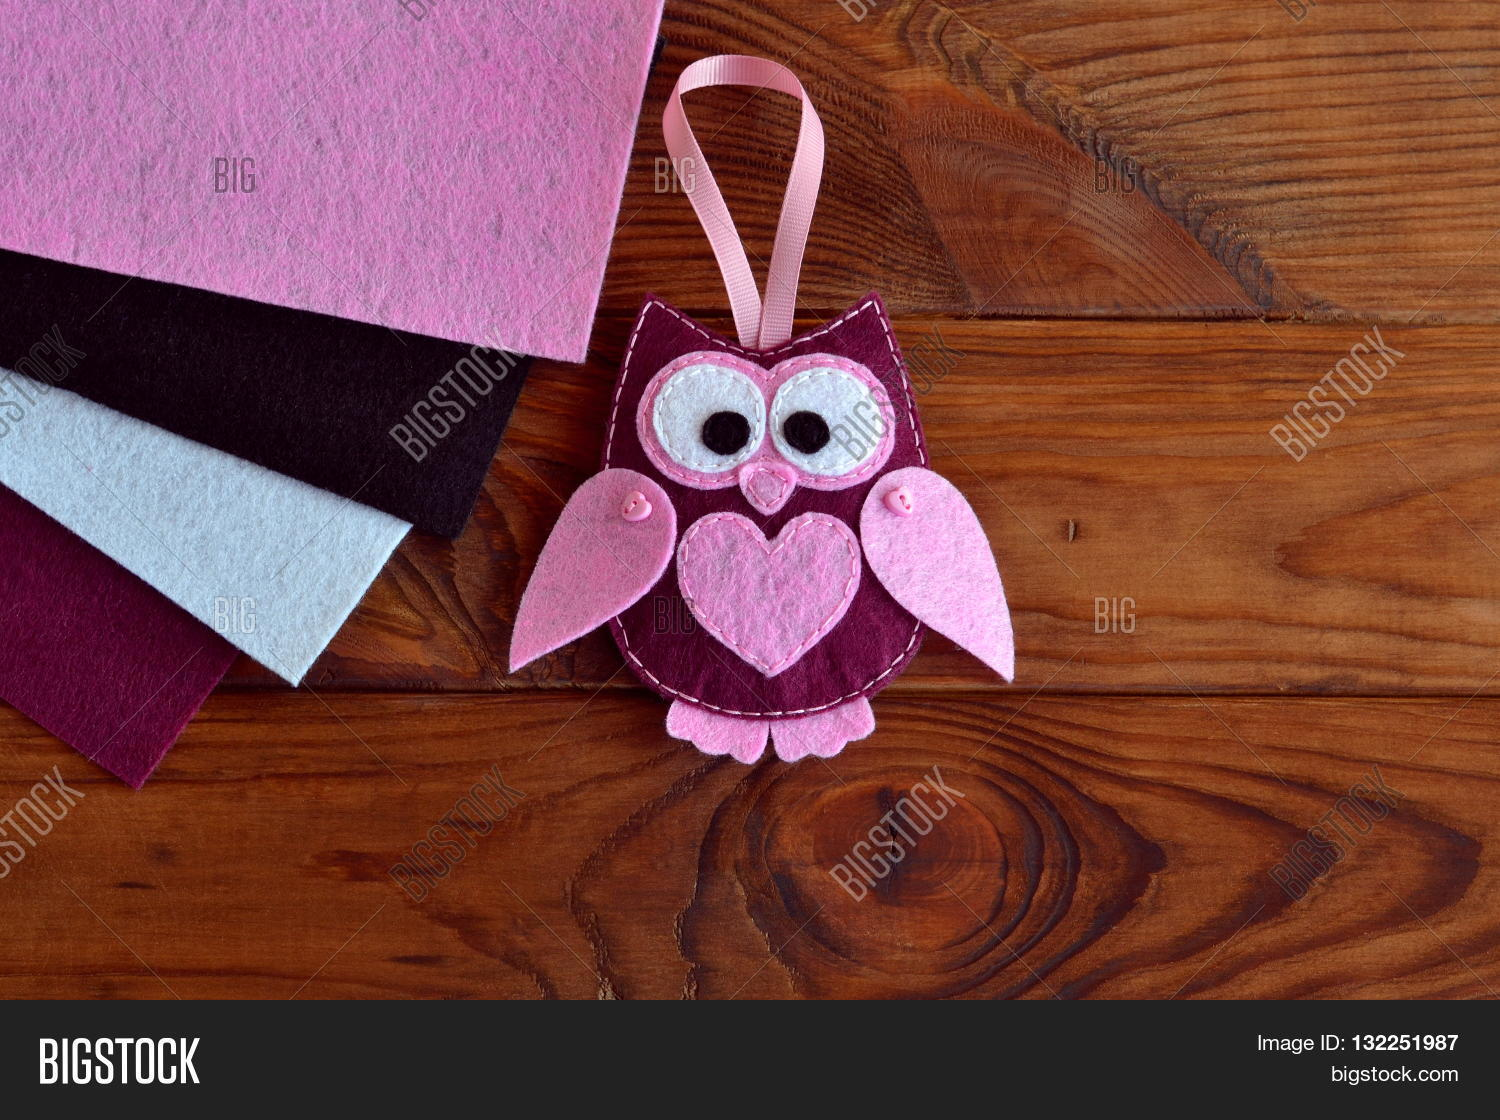 Burgundy Pink Felt Owl Toy. Owl Image & Photo | Bigstock